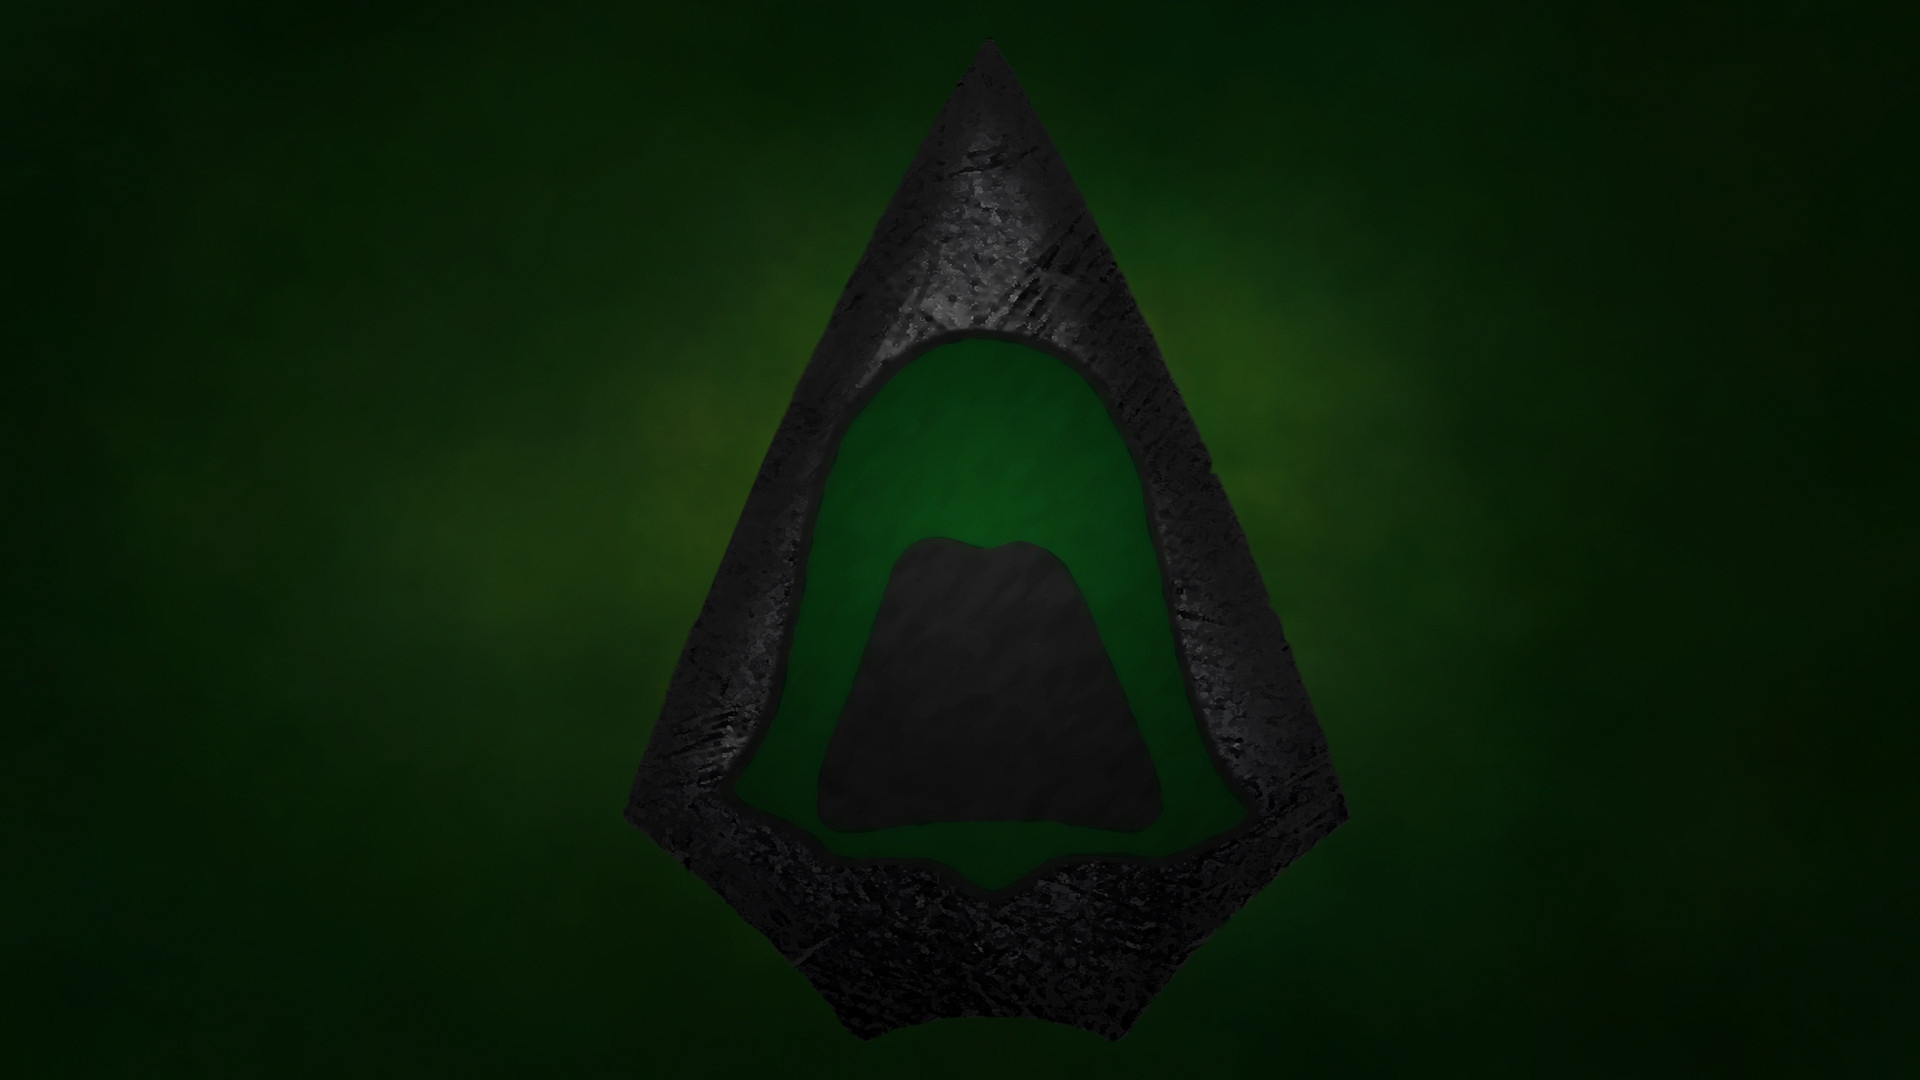 Green Arrow wallpaper  Download free awesome full HD